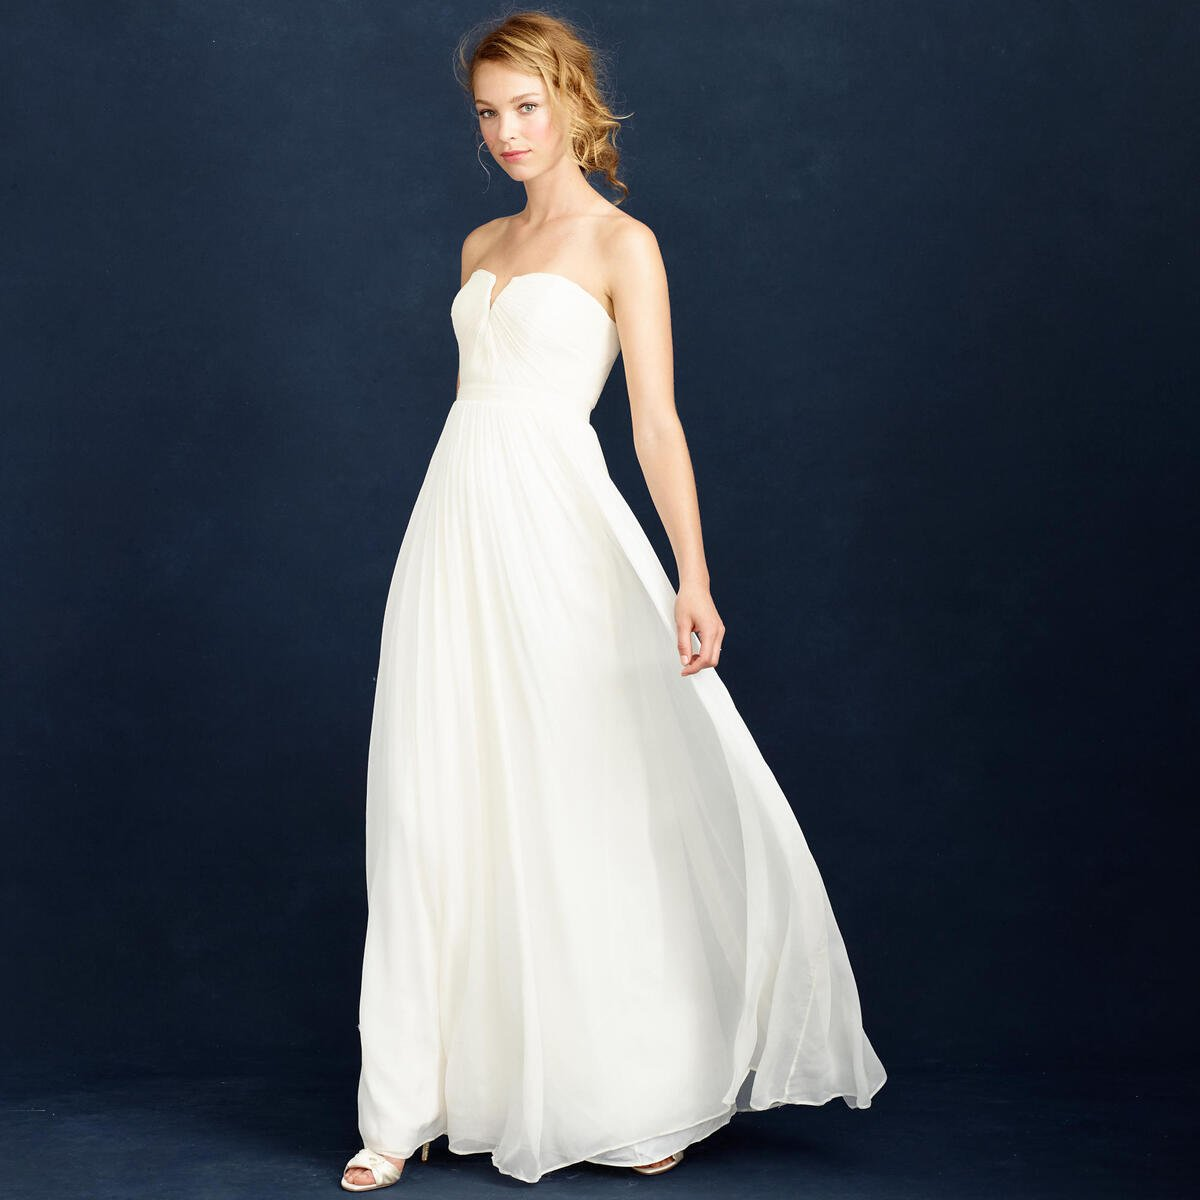 J Crew Is Getting Rid Of It S Bridal Line But Now Everything Is On Sale Woman Getting Married